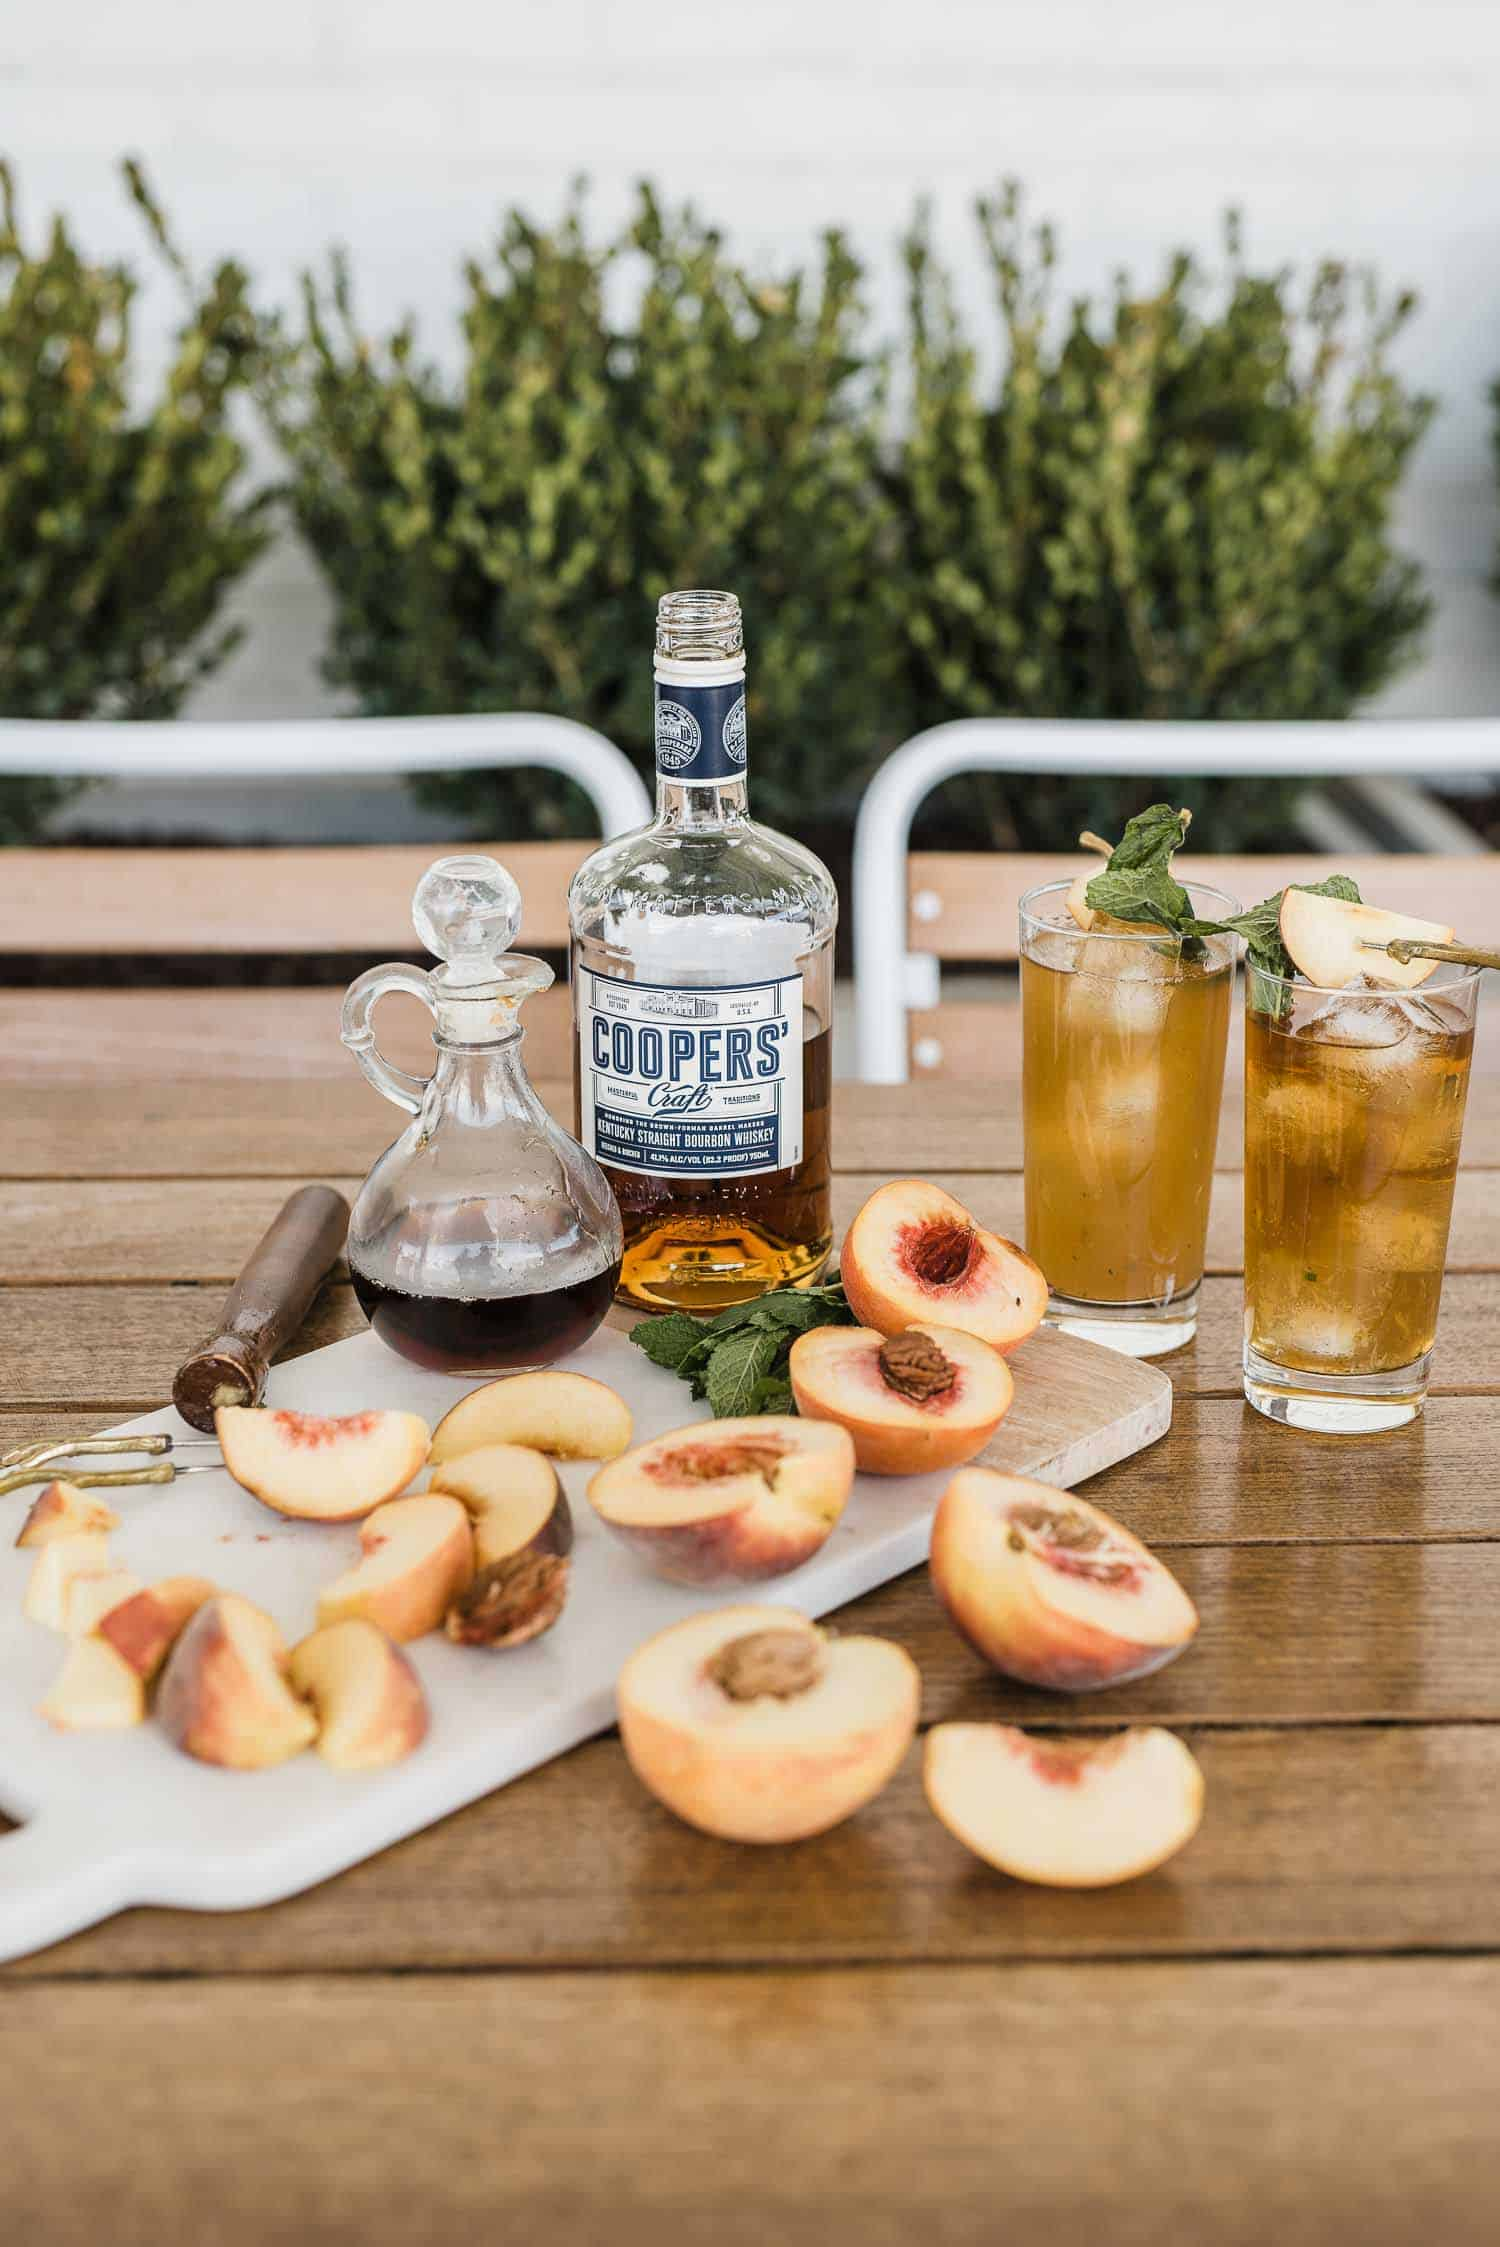 A Peach Mint Smash Cocktail Recipe With Coopers' Craft Bourbon